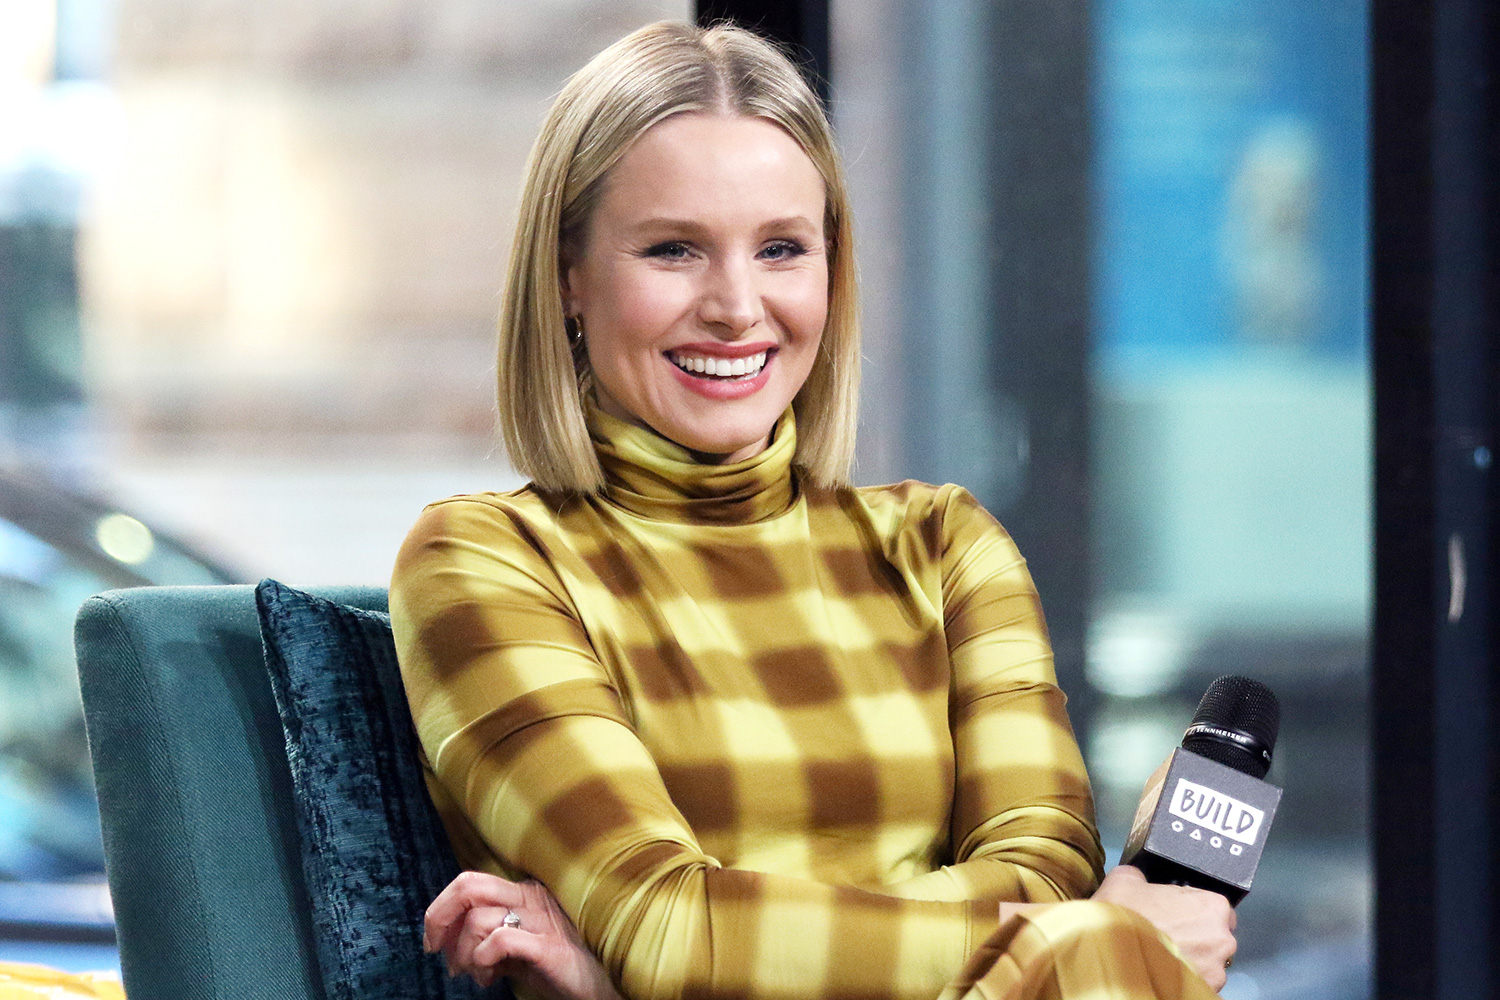 Kristen Bell attends the Build Series to discuss her product line Hello Bello at Build Studio on February 21, 2020 in New York City